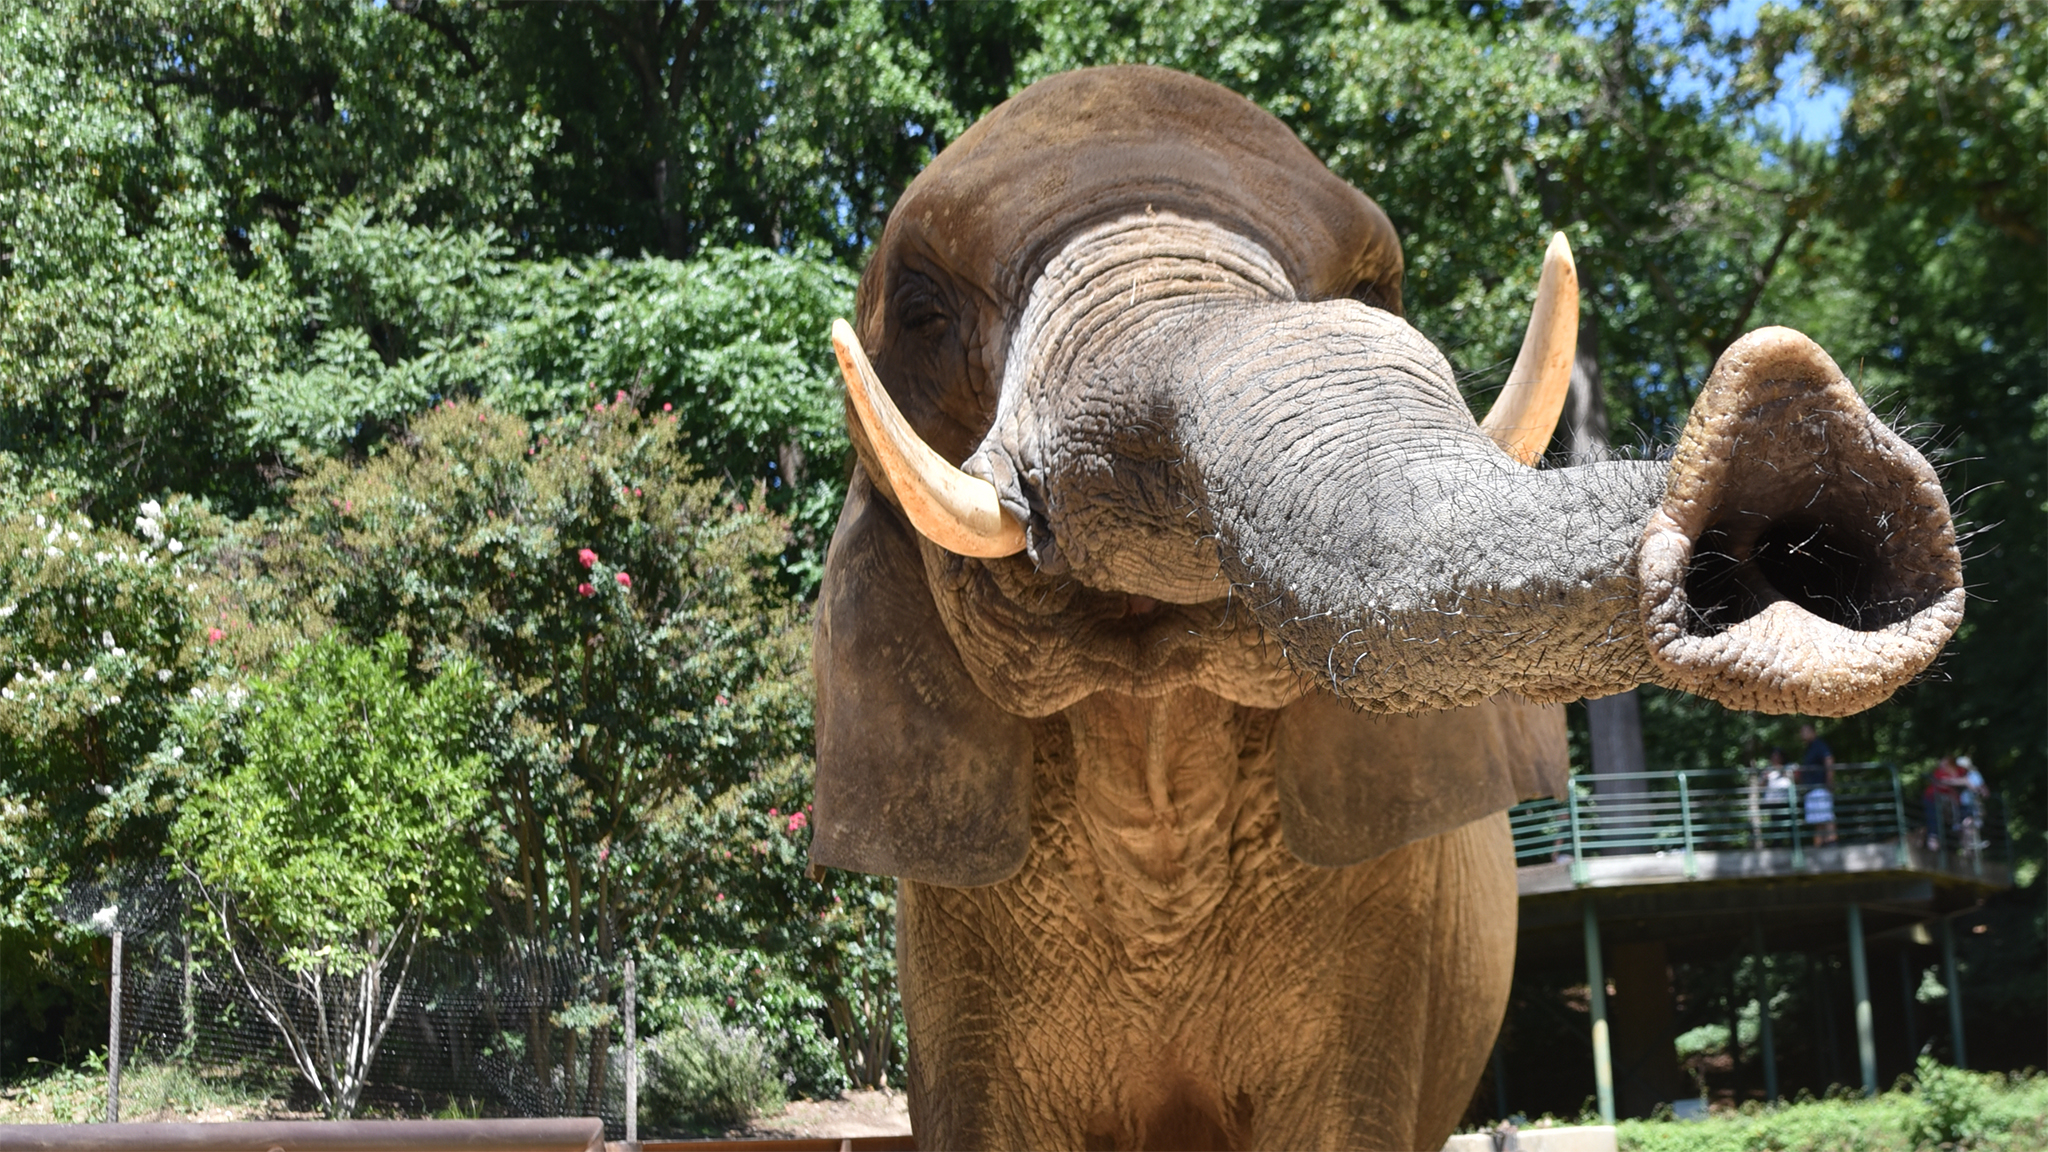 Elephant with trunk extended.